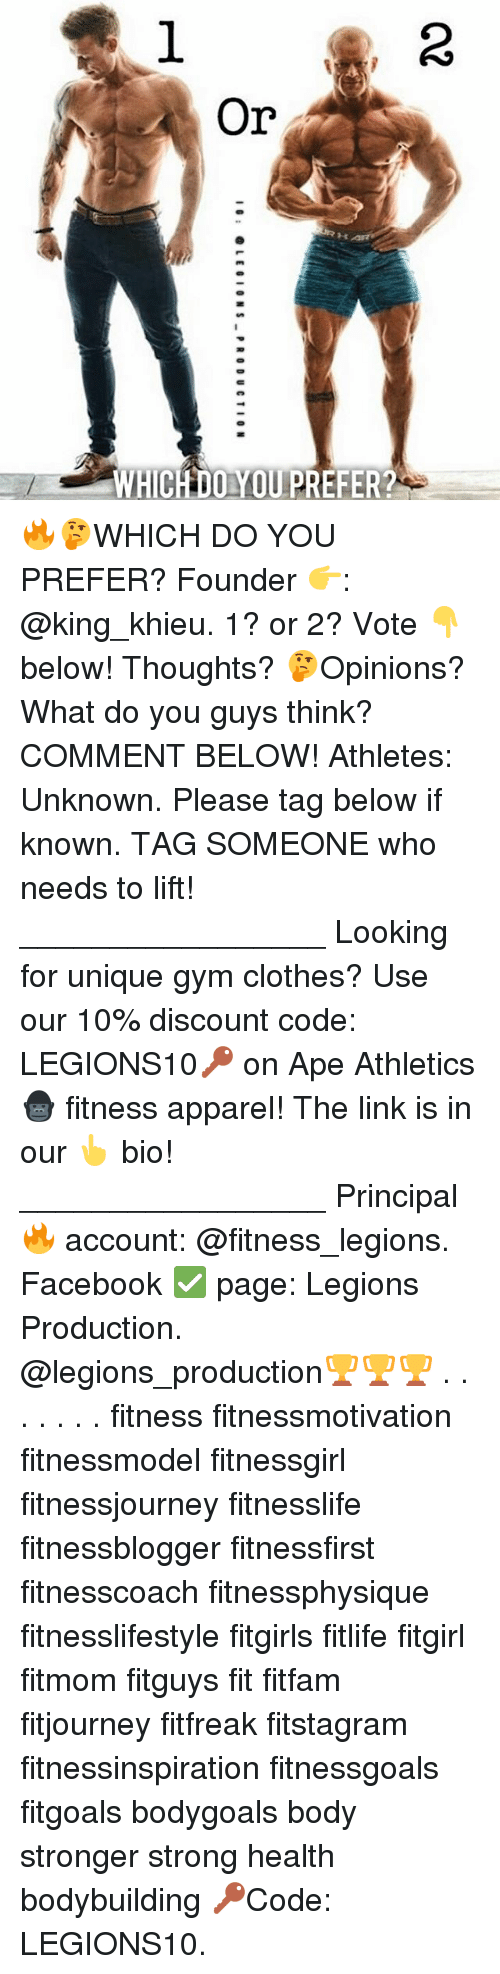 Memes, 🤖, and The Link: Or  H  WHICH DO YOU PREFER?  O2  10: @LEGIONS-PRODUCTION  1 🔥🤔WHICH DO YOU PREFER? Founder 👉: @king_khieu. 1? or 2? Vote 👇 below! Thoughts? 🤔Opinions? What do you guys think? COMMENT BELOW! Athletes: Unknown. Please tag below if known. TAG SOMEONE who needs to lift! _________________ Looking for unique gym clothes? Use our 10% discount code: LEGIONS10🔑 on Ape Athletics 🦍 fitness apparel! The link is in our 👆 bio! _________________ Principal 🔥 account: @fitness_legions. Facebook ✅ page: Legions Production. @legions_production🏆🏆🏆 . . . . . . . fitness fitnessmotivation fitnessmodel fitnessgirl fitnessjourney fitnesslife fitnessblogger fitnessfirst fitnesscoach fitnessphysique fitnesslifestyle fitgirls fitlife fitgirl fitmom fitguys fit fitfam fitjourney fitfreak fitstagram fitnessinspiration fitnessgoals fitgoals bodygoals body stronger strong health bodybuilding 🔑Code: LEGIONS10.